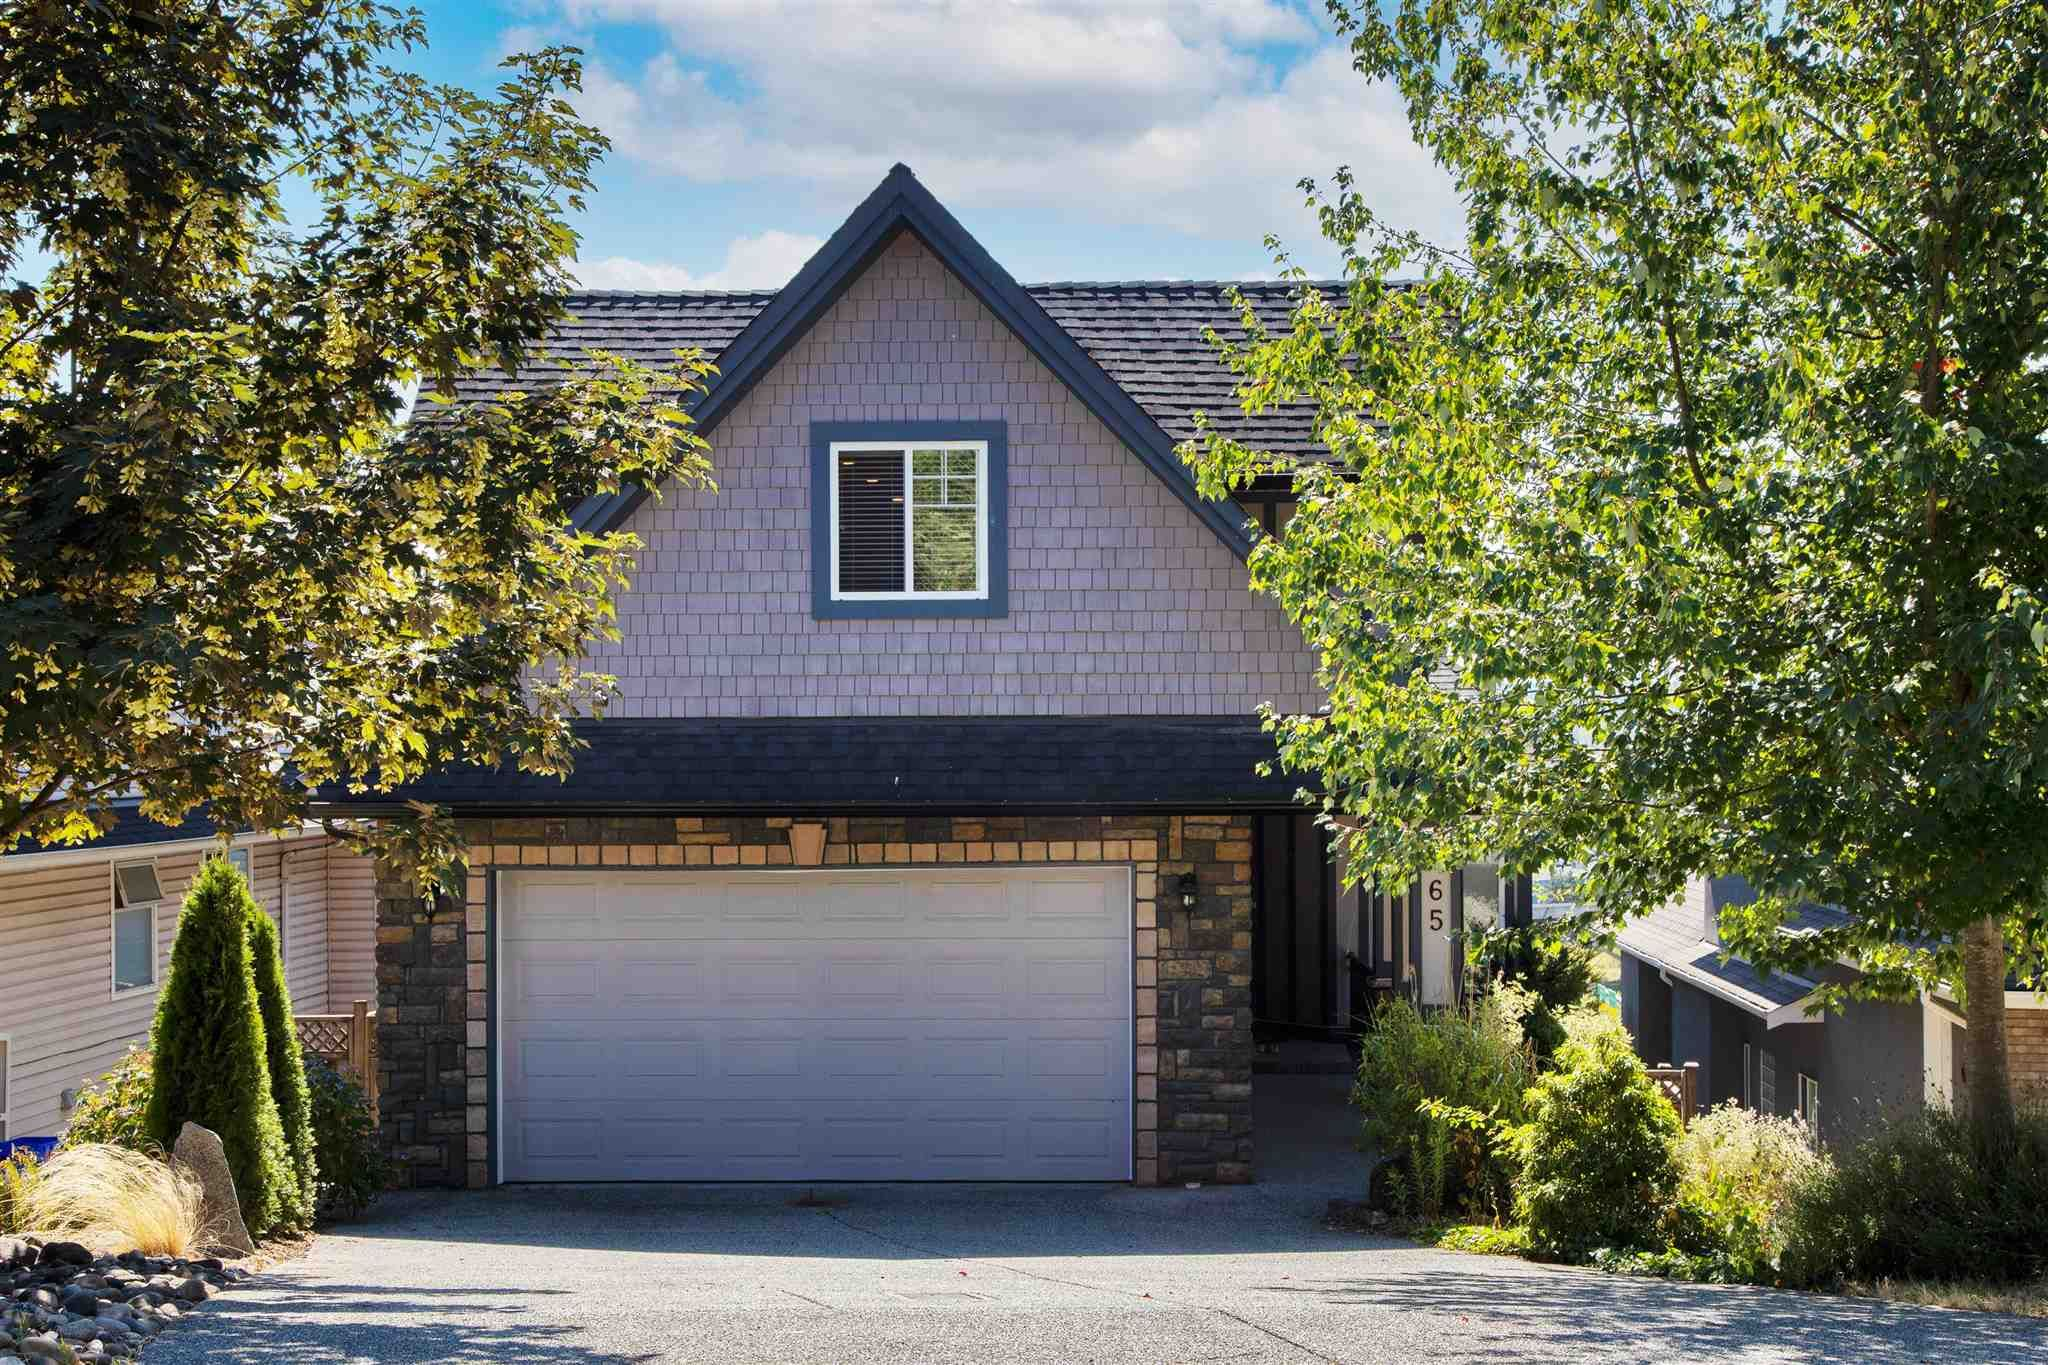 Main Photo: 165 WARRICK Street in Coquitlam: Cape Horn House for sale : MLS®# R2608916